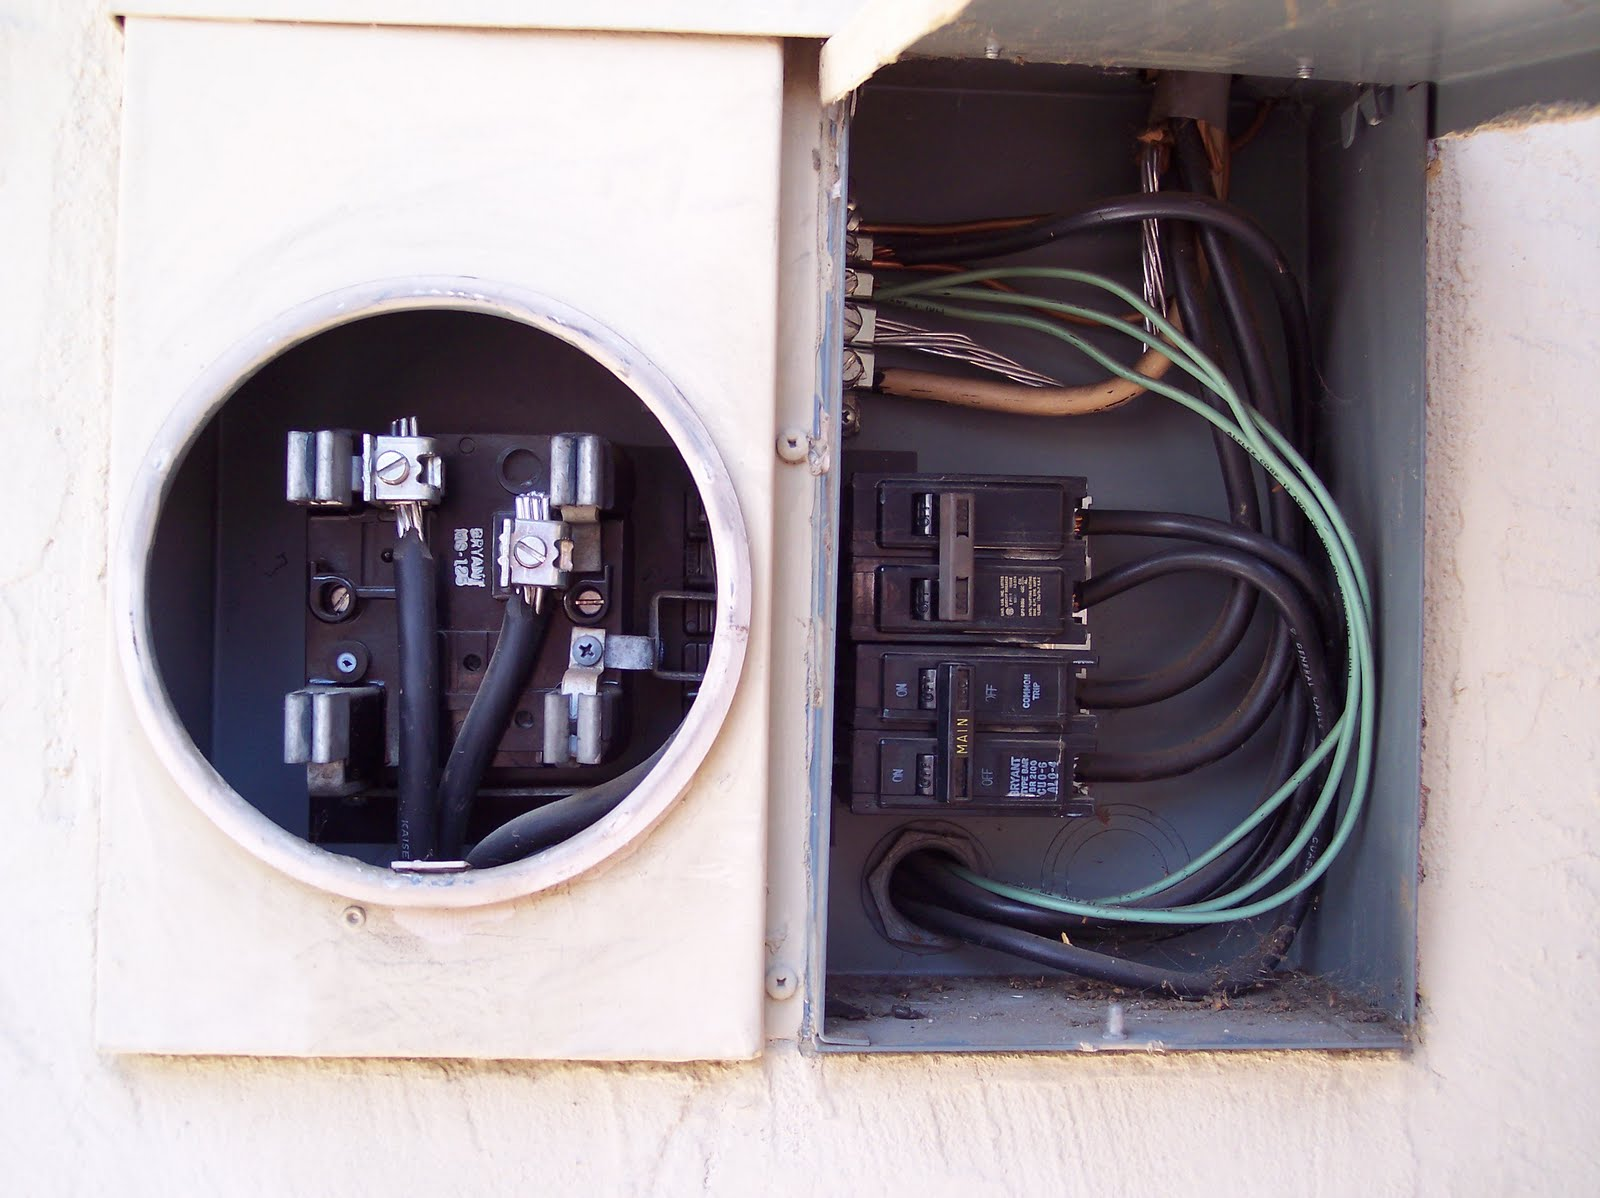 2121 Interbay Drive Electric Meter Socket Load Center Bryant Wiring Devices Ms 125 Needs The And Bus Bar Replaced Aluminum Wires From Main